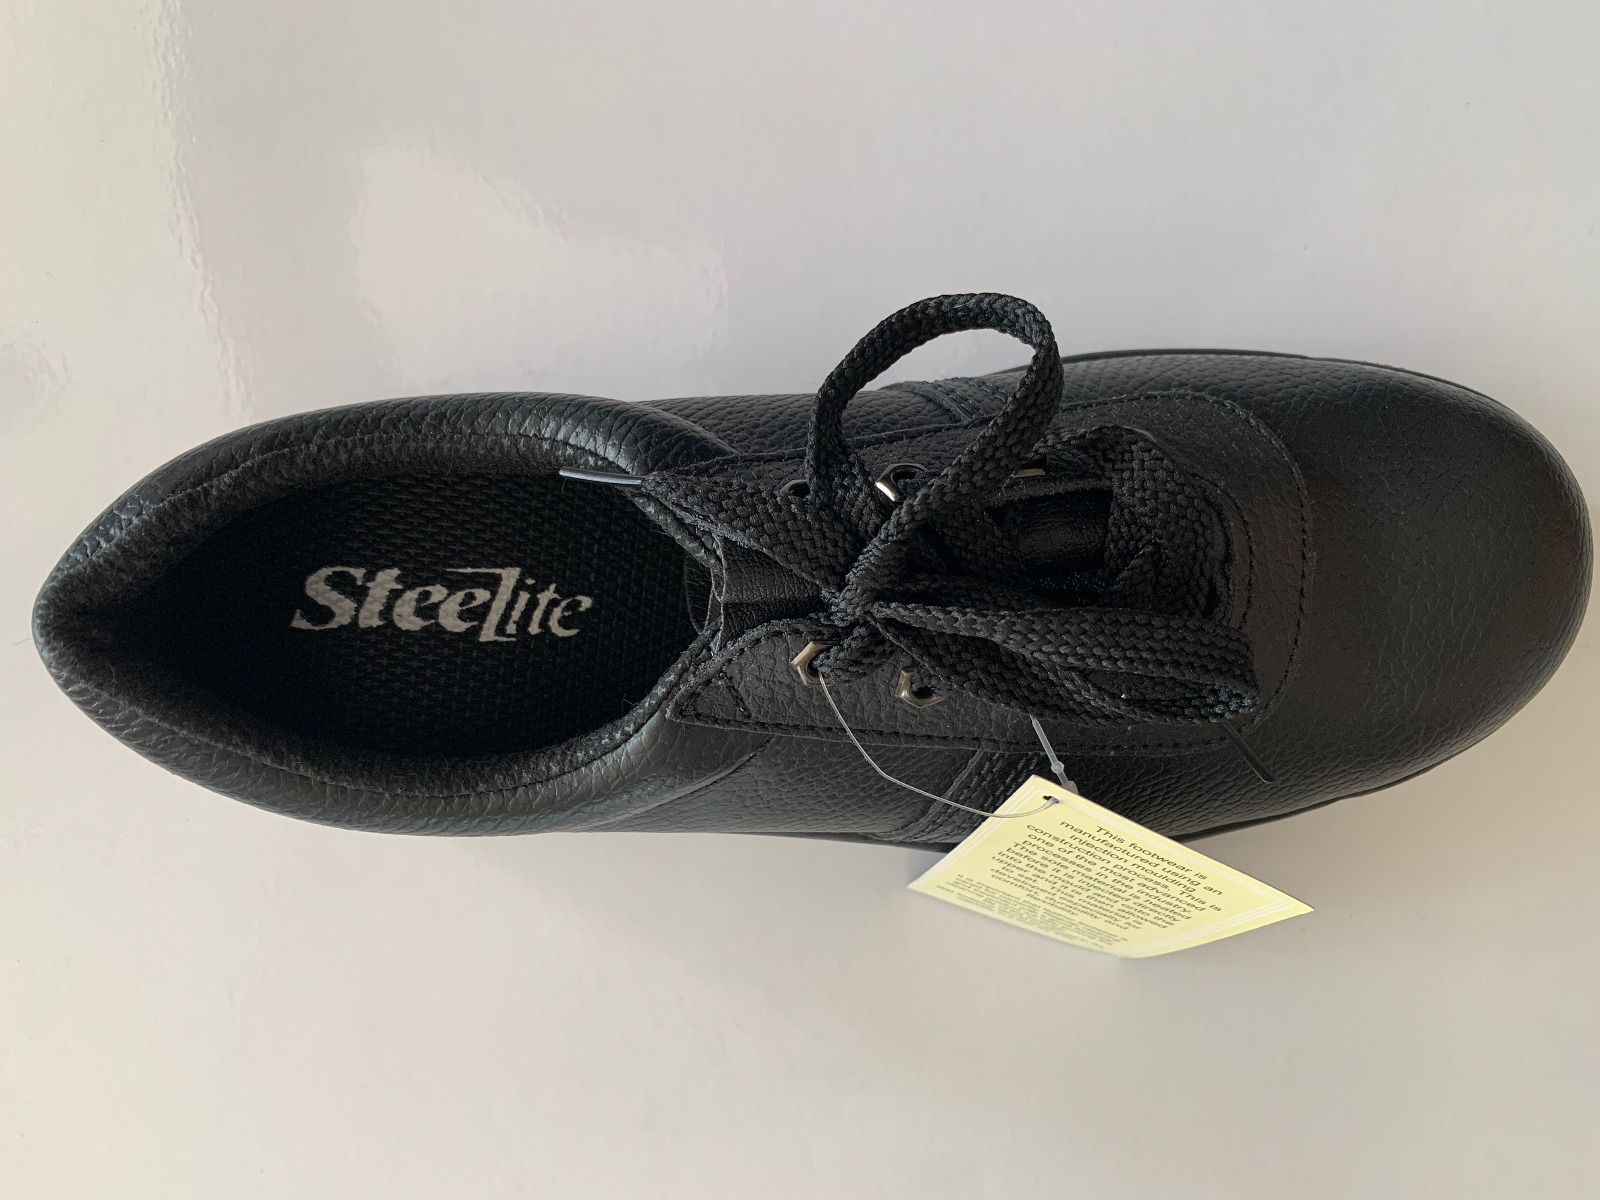 Steeltoe Work Shoe (size 10)